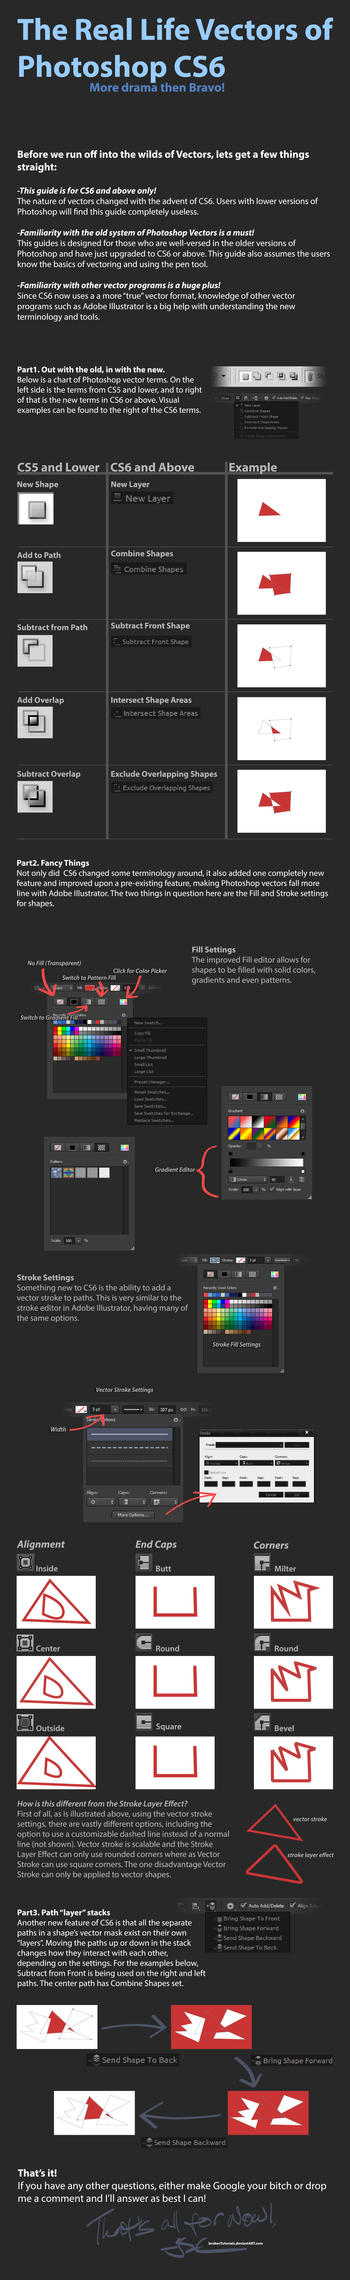 Photoshop cs6 vector guide by jrcnrd on deviantart photoshop cs6 vector guide by jrcnrd baditri Gallery